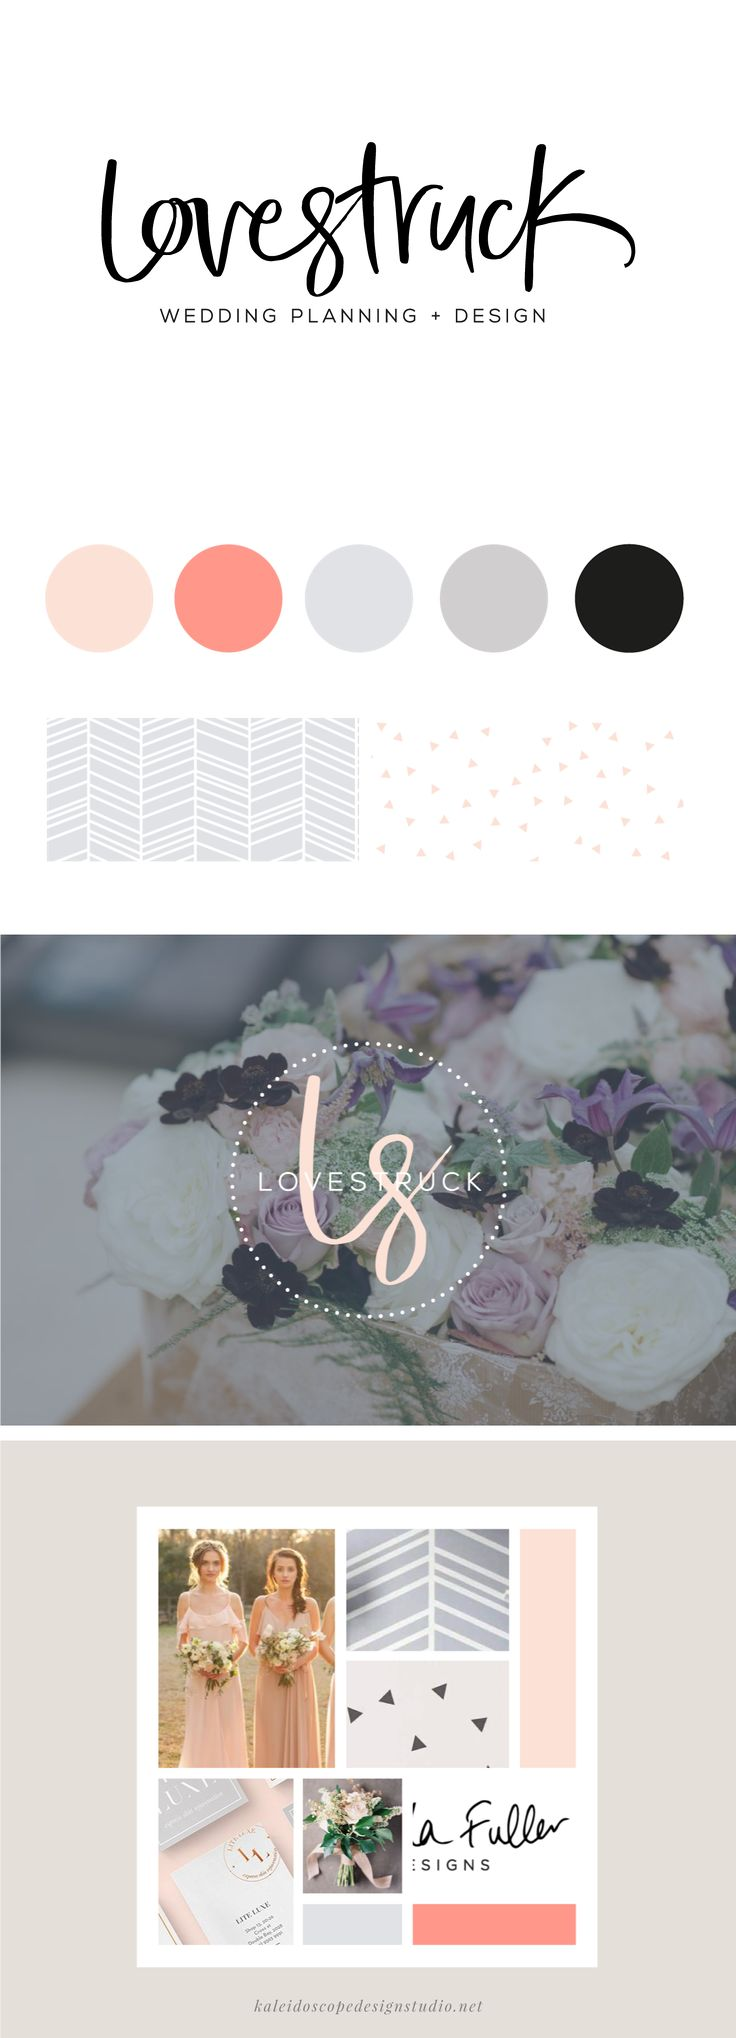 Lovestruck Wedding Planning and Design Brand Styling - Kaleidoscope Design Studio